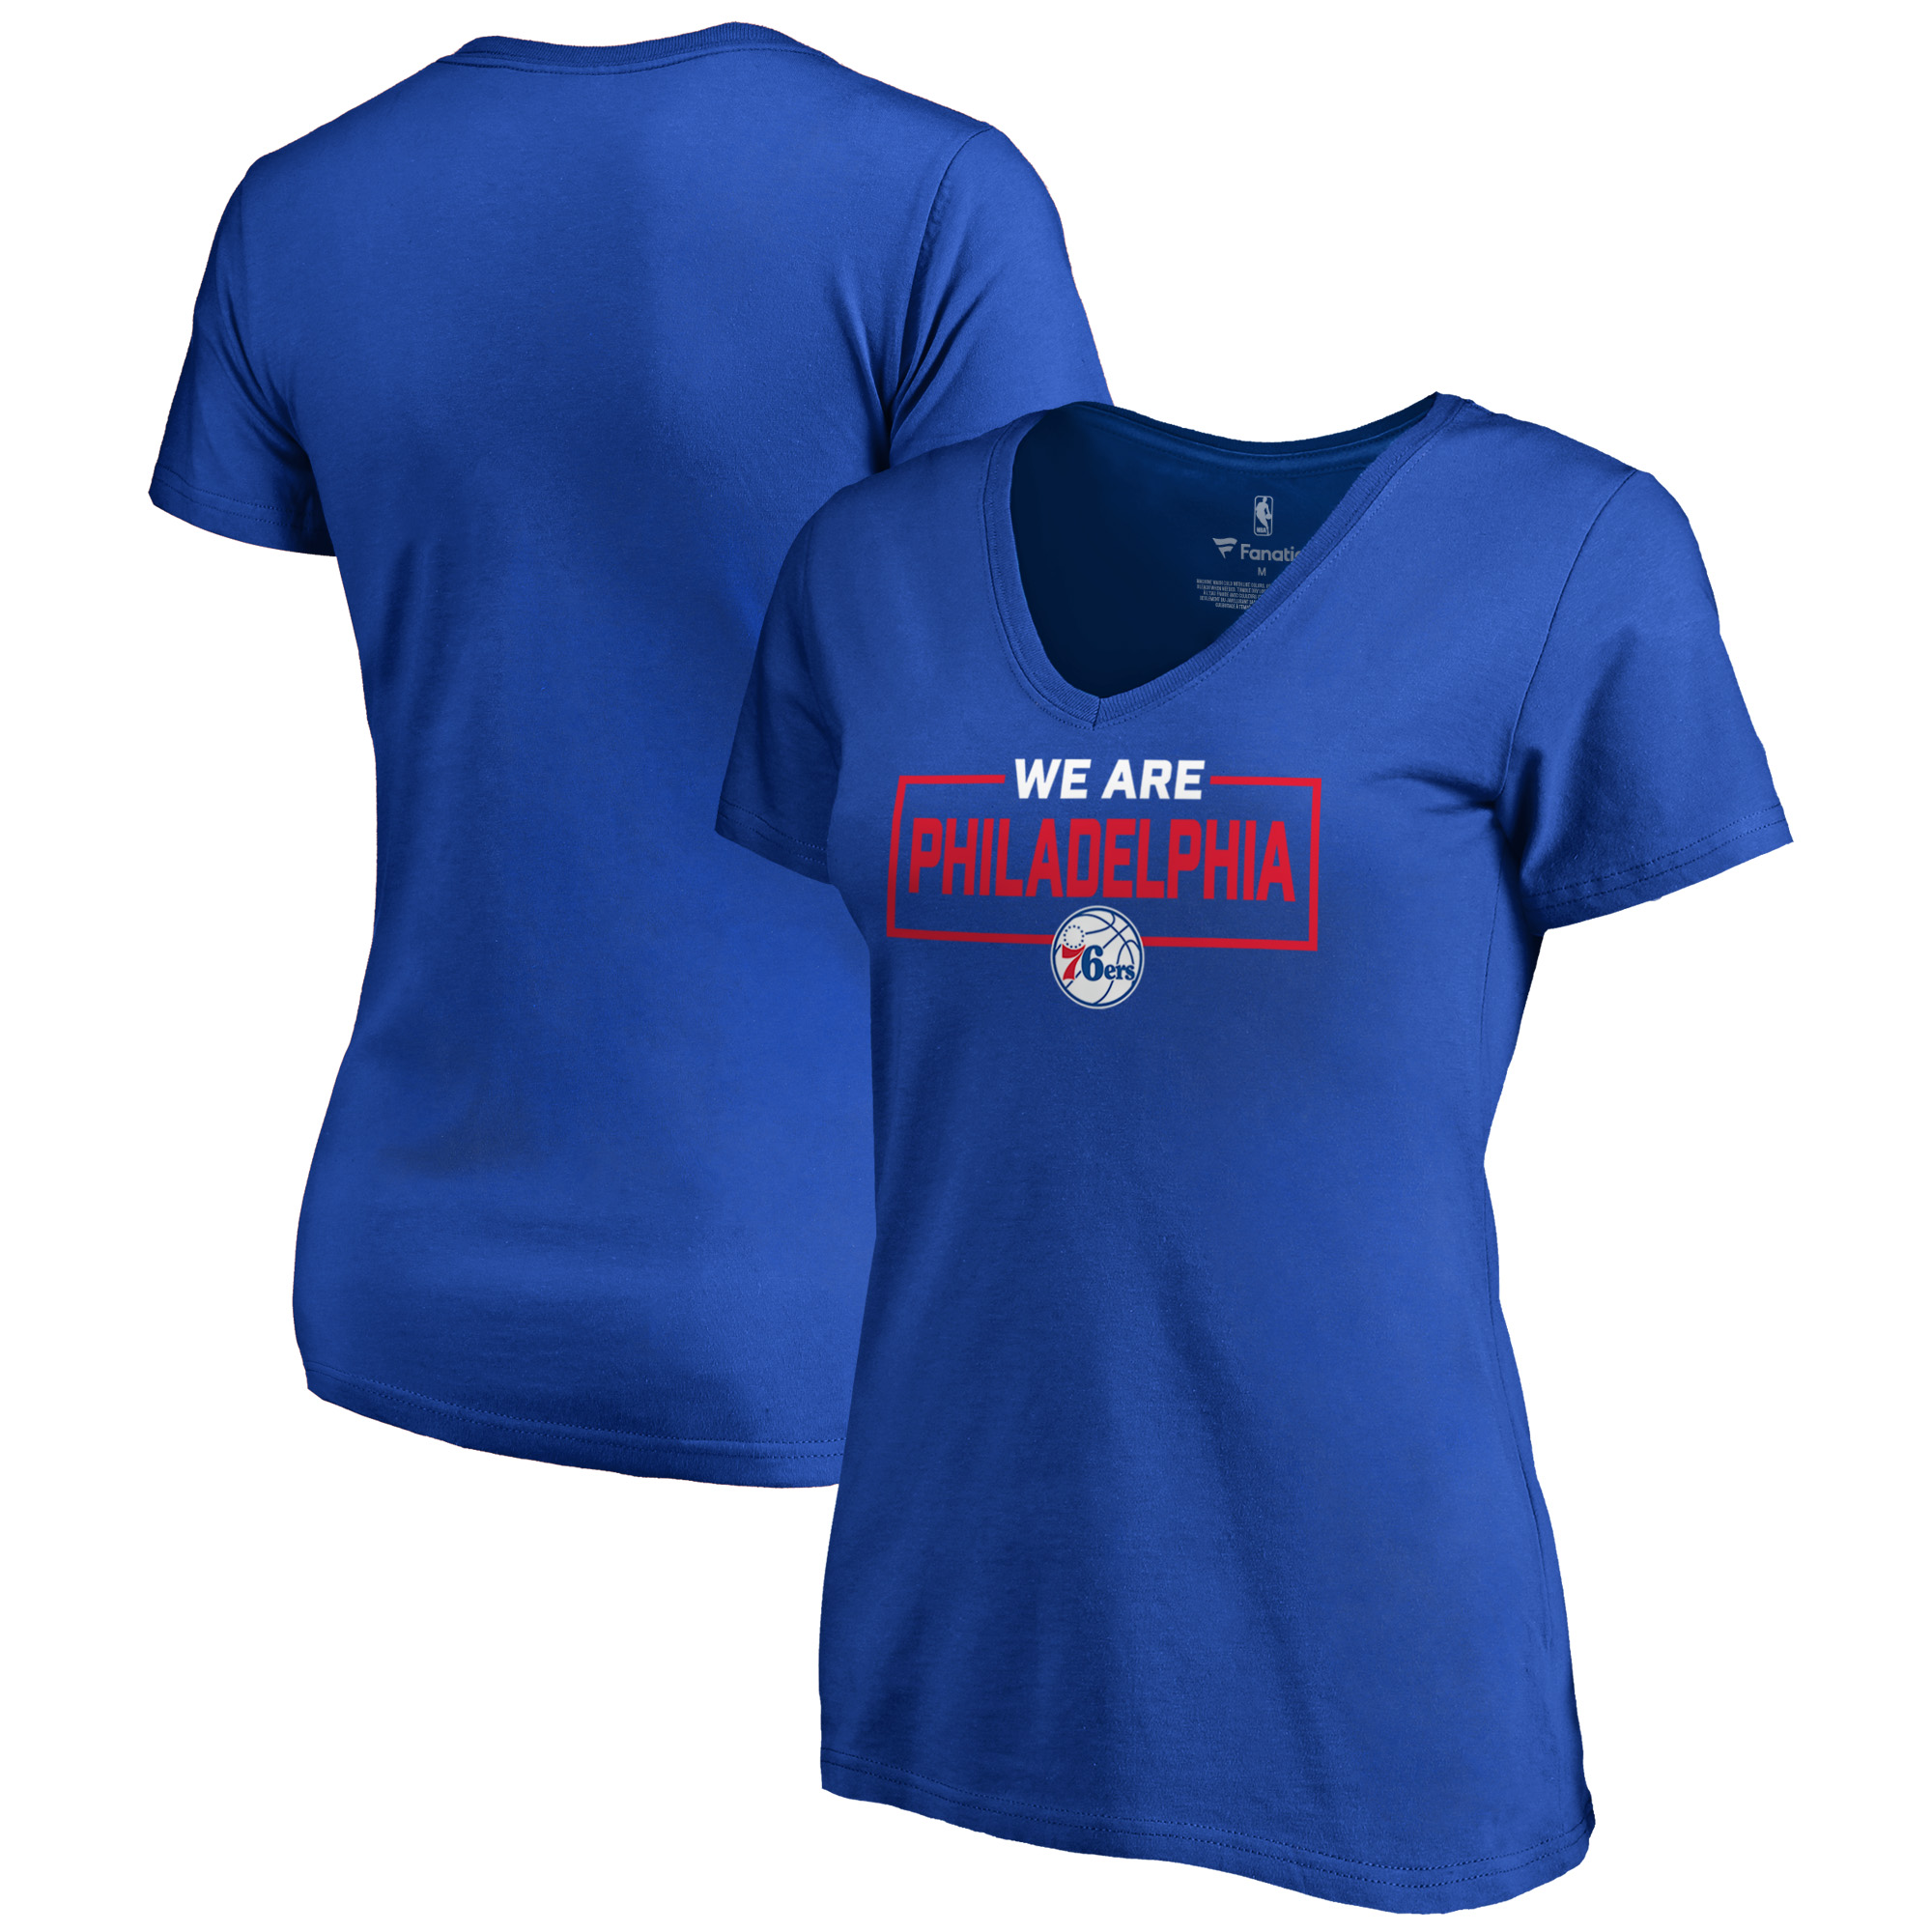 Philadelphia 76ers Fanatics Branded Women's We Are Iconic Collection V-Neck T-Shirt - Royal